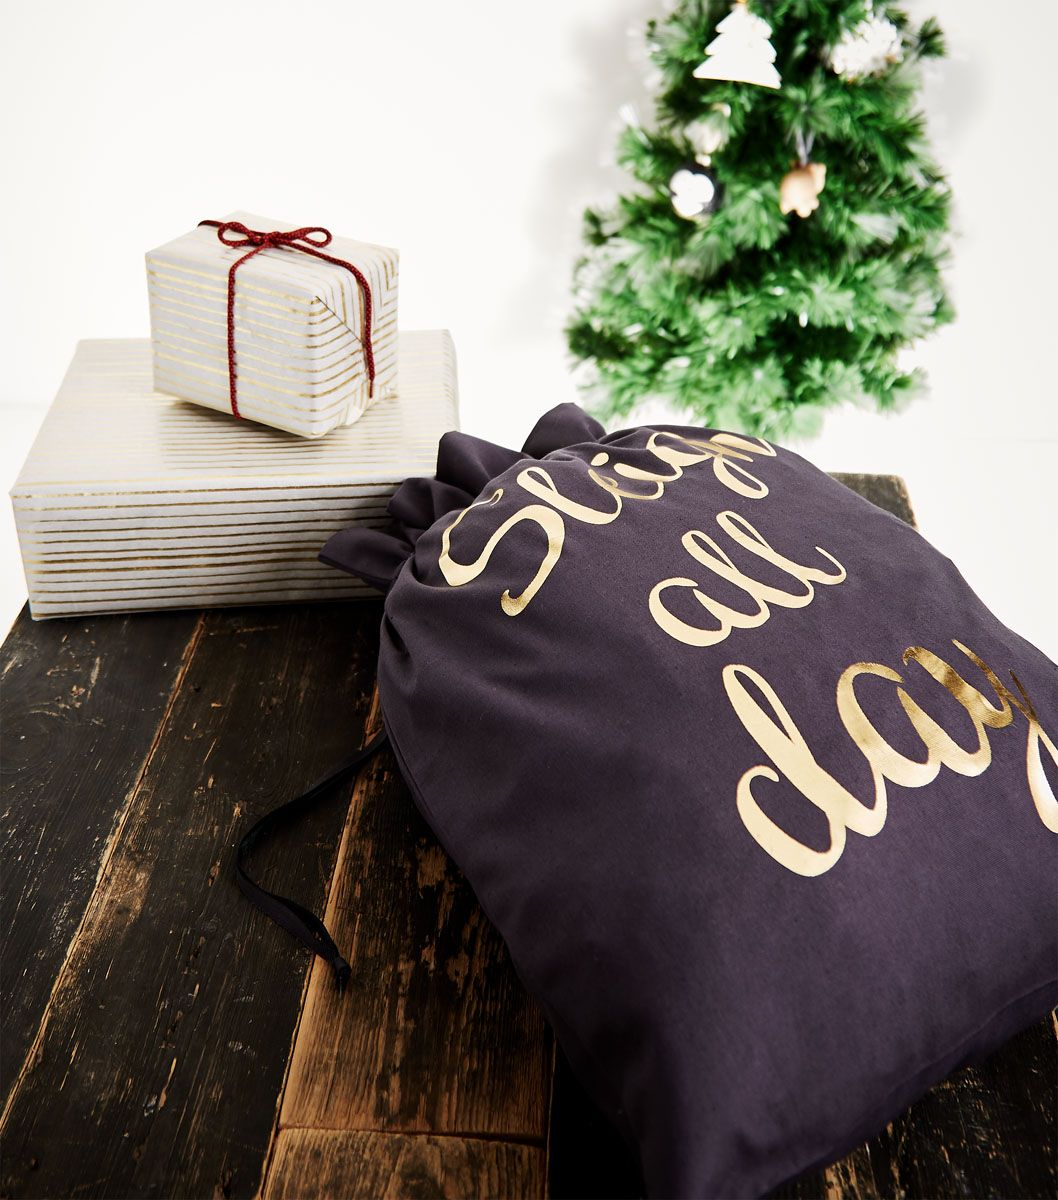 Have Christmas bagged up with this printed present sack